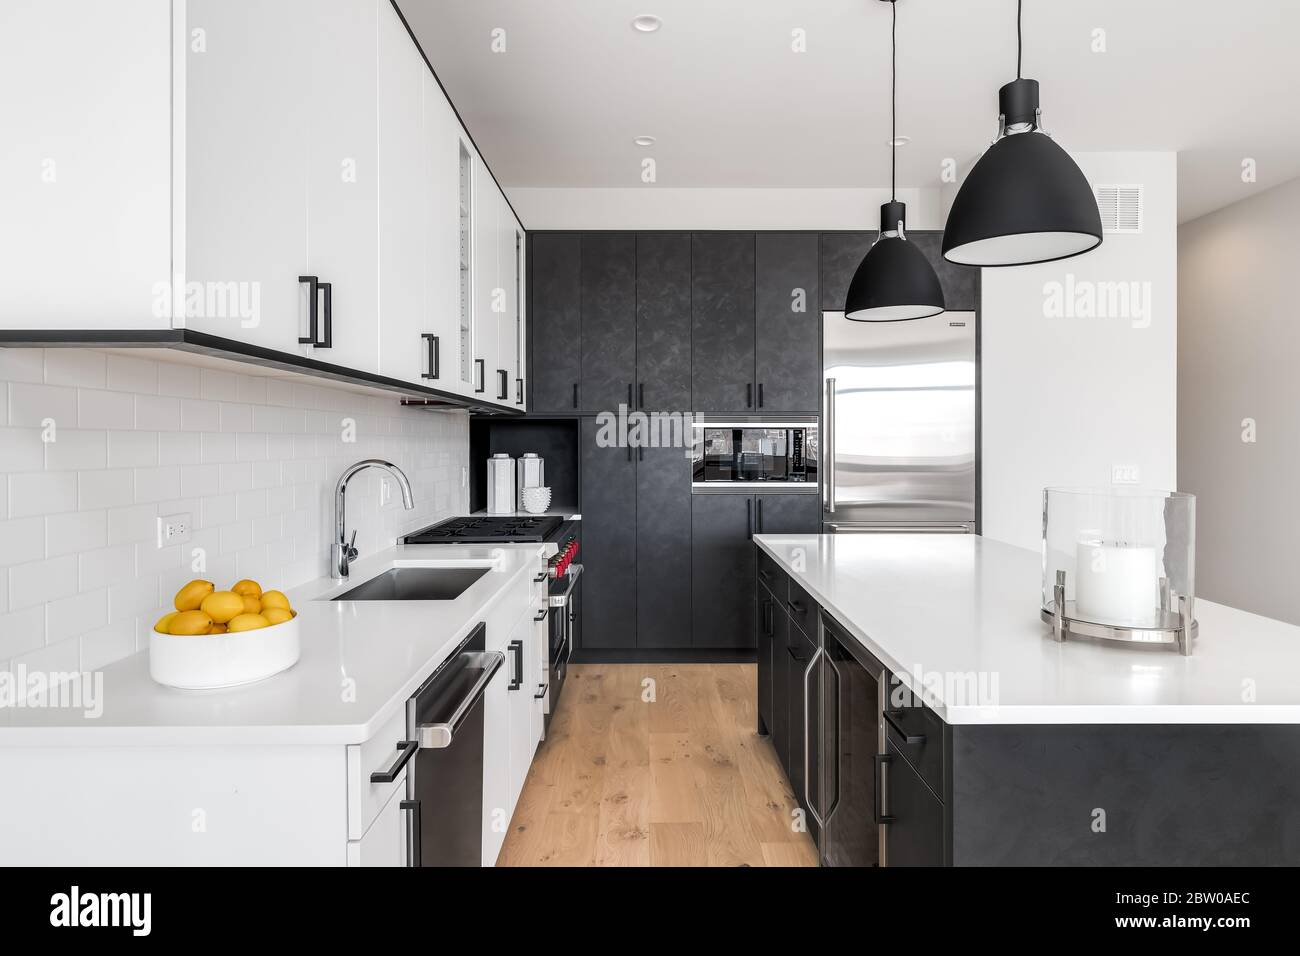 - A Modern Kitchen With Black And White Cabinets, Stainless Steel